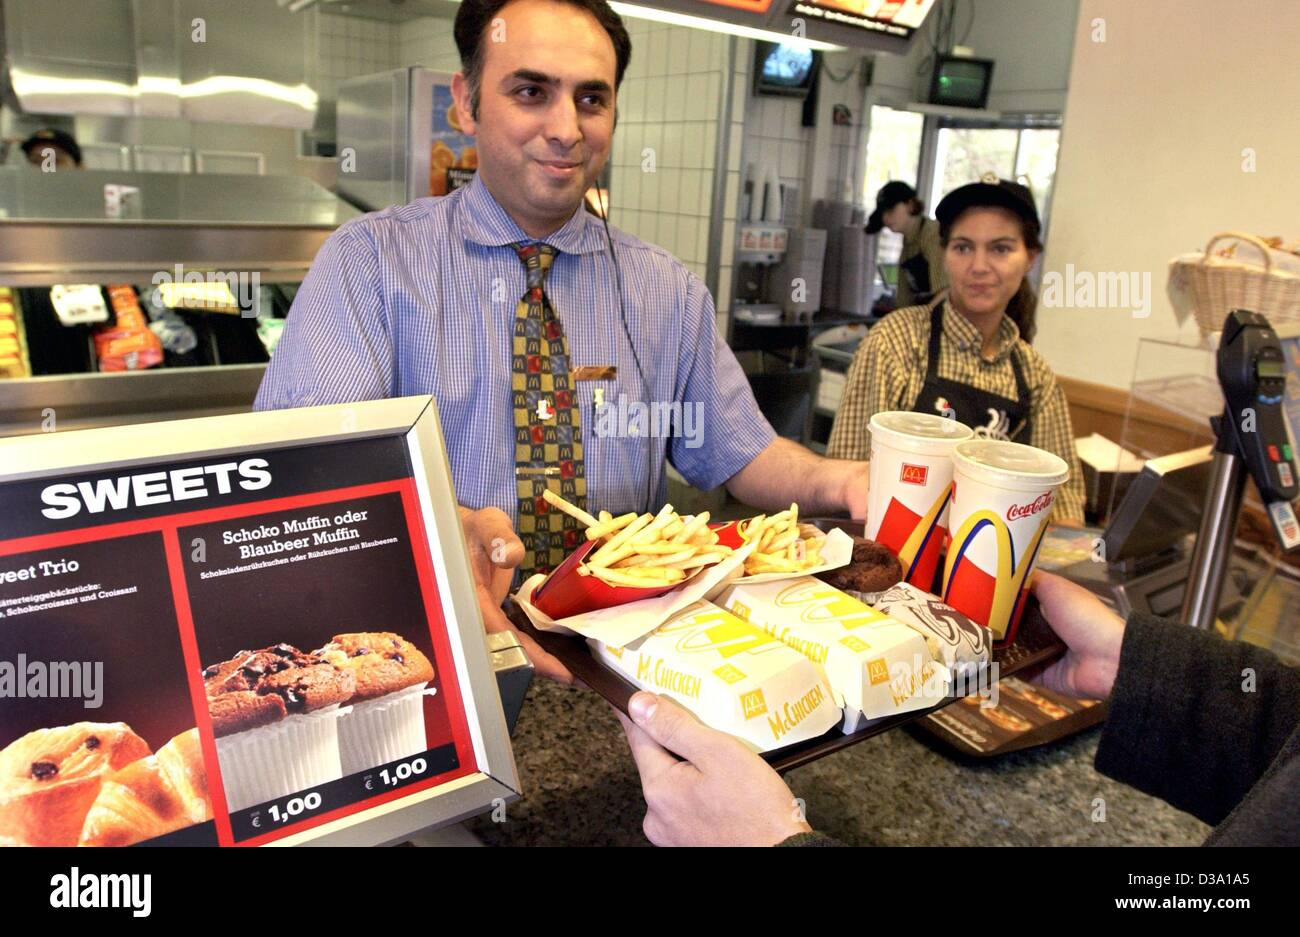 (dpa) - A McDonald's employee is handing over a tray of food to a customer at one of the chain's fast-food - Stock Image